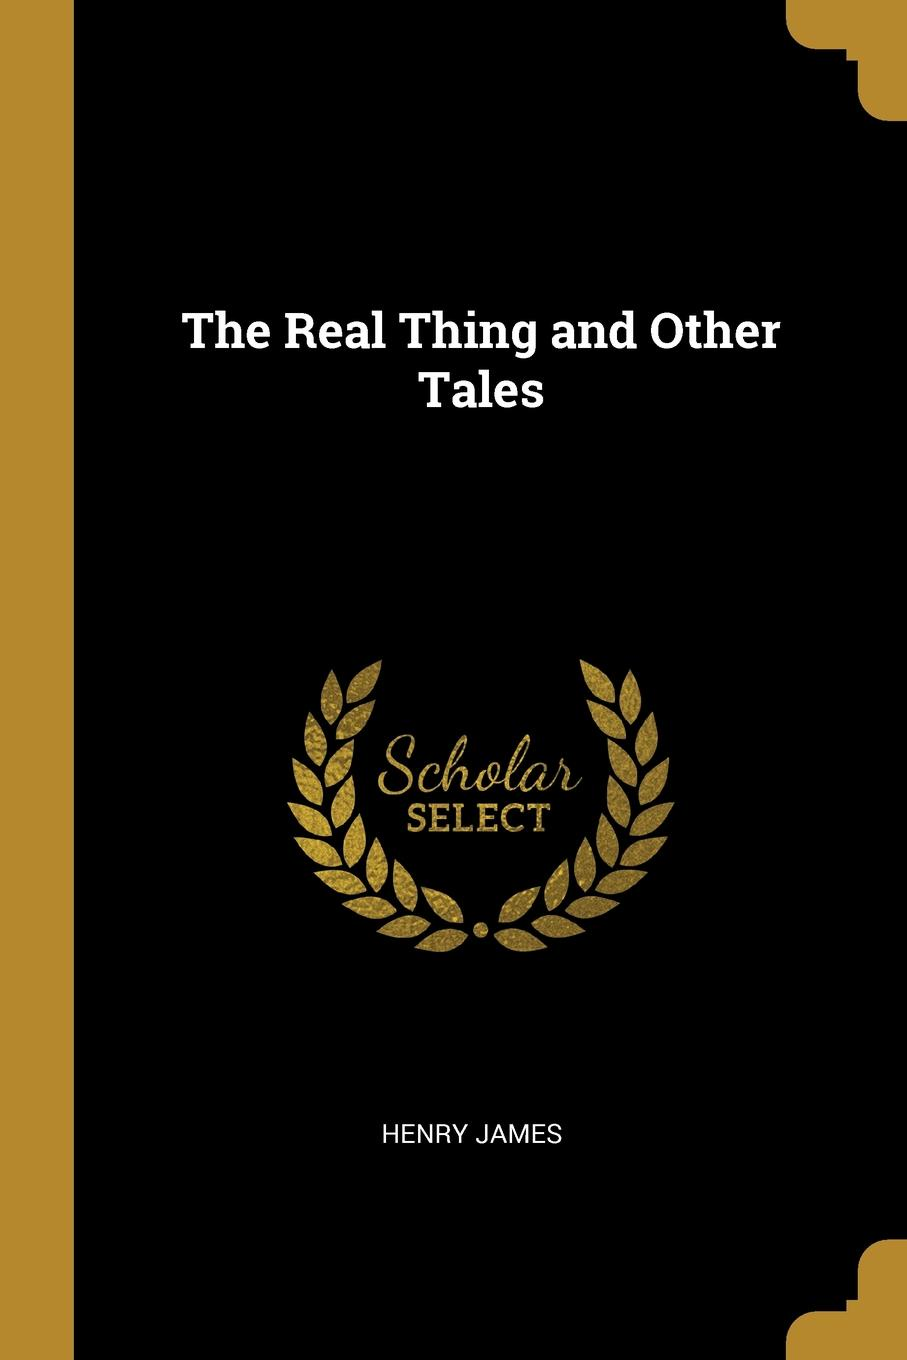 Henry James. The Real Thing and Other Tales